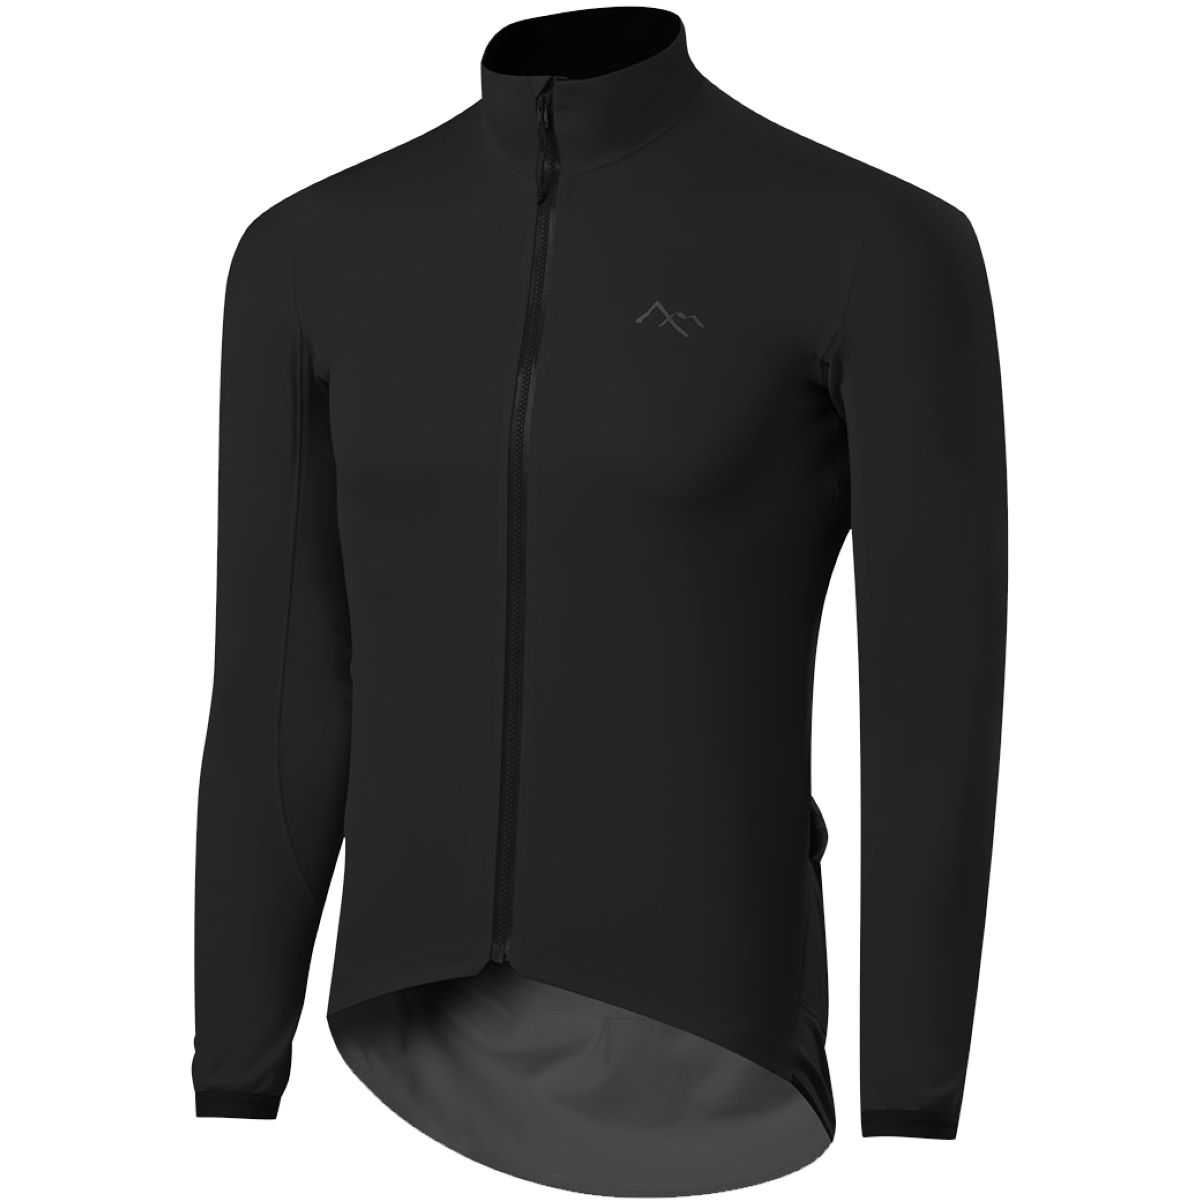 Maillot 7Mesh Corsa Windstopper Softshell - XL Noir Coupe-vents vélo